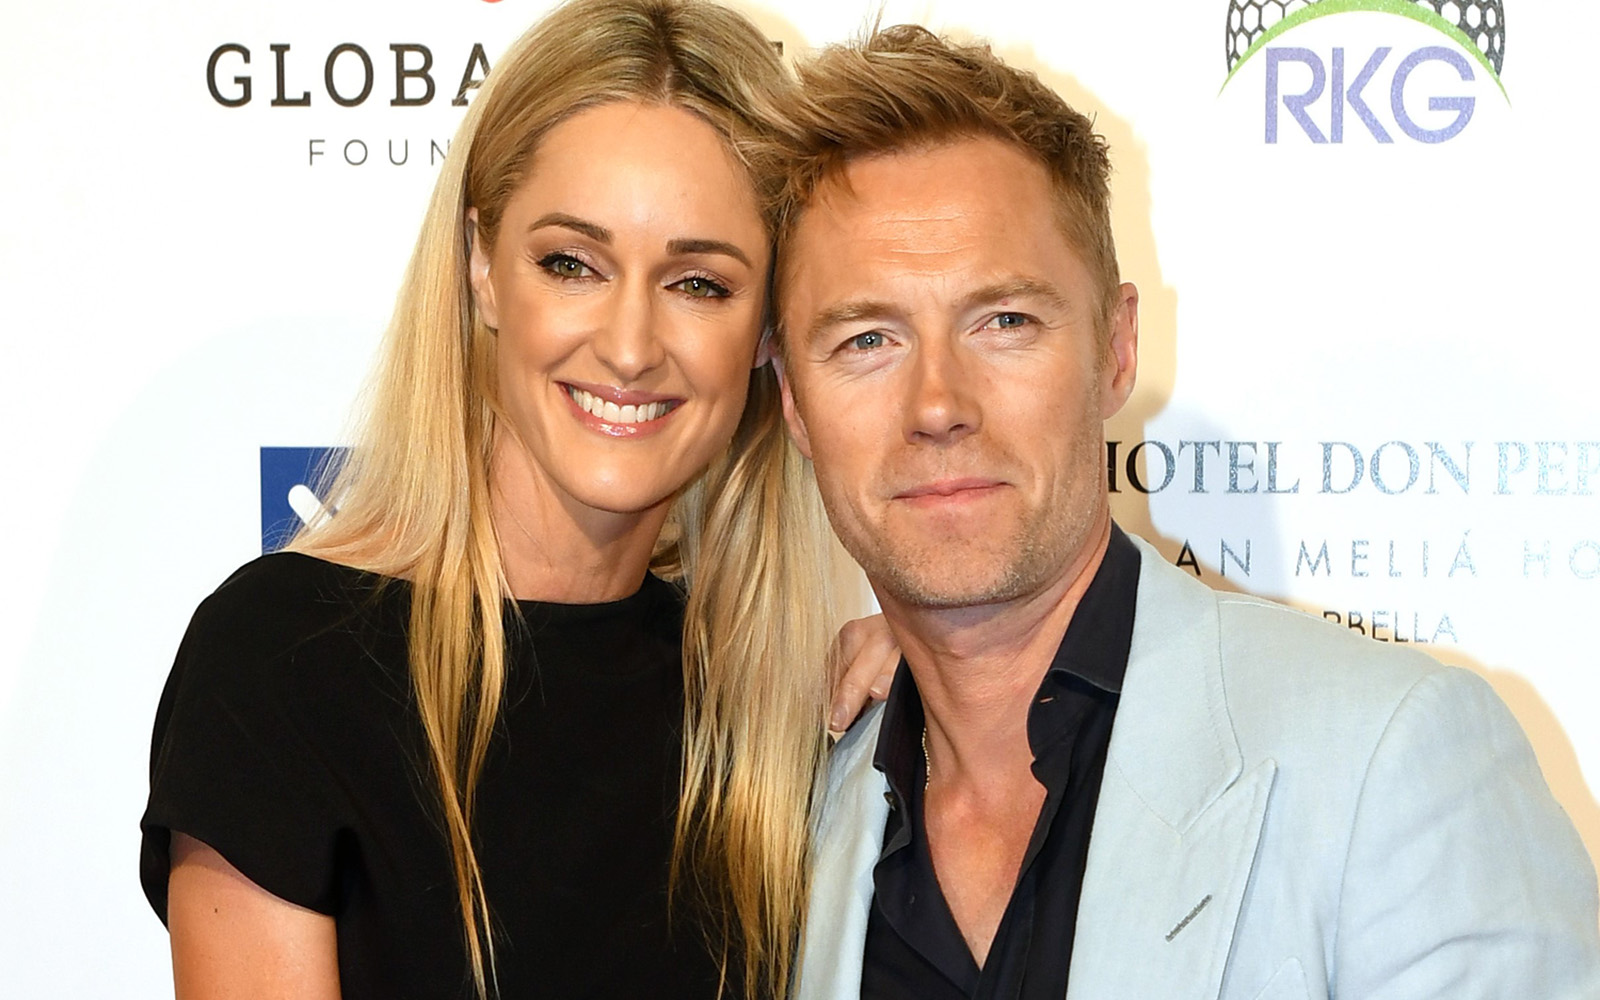 Ronan Keating's wife shares cute photo of son bonding with newborn sister